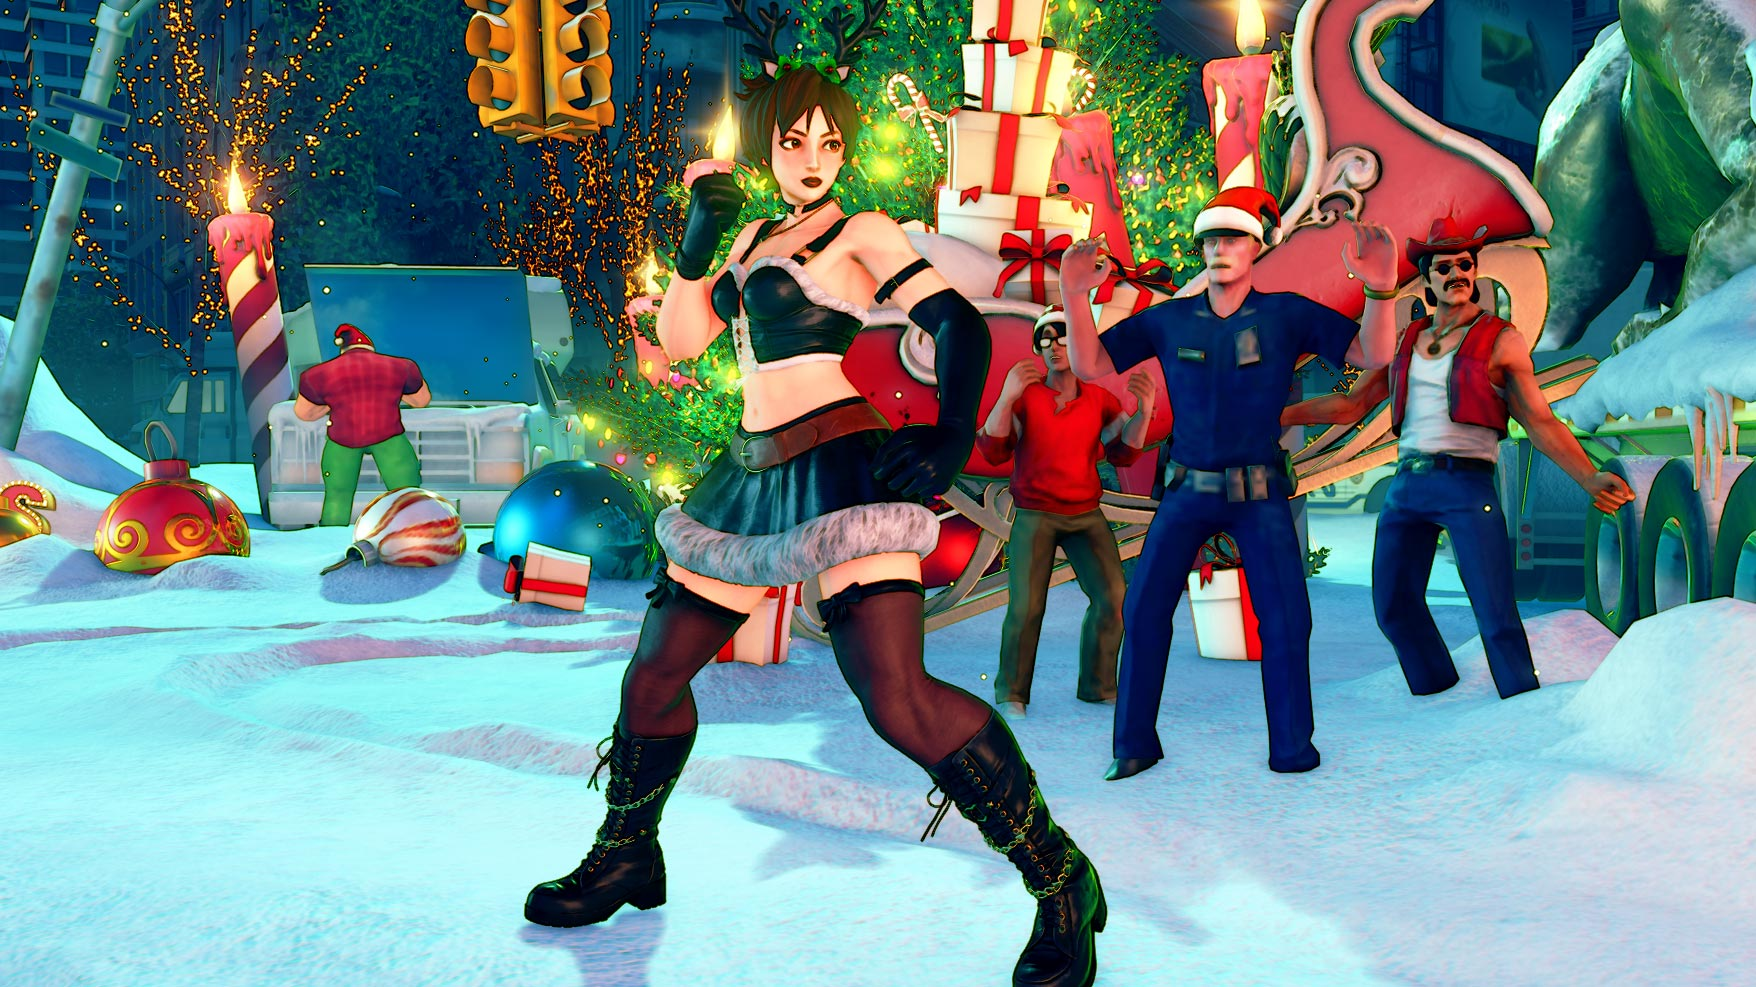 New Street Fighter 5 holiday costumes 8 out of 12 image gallery